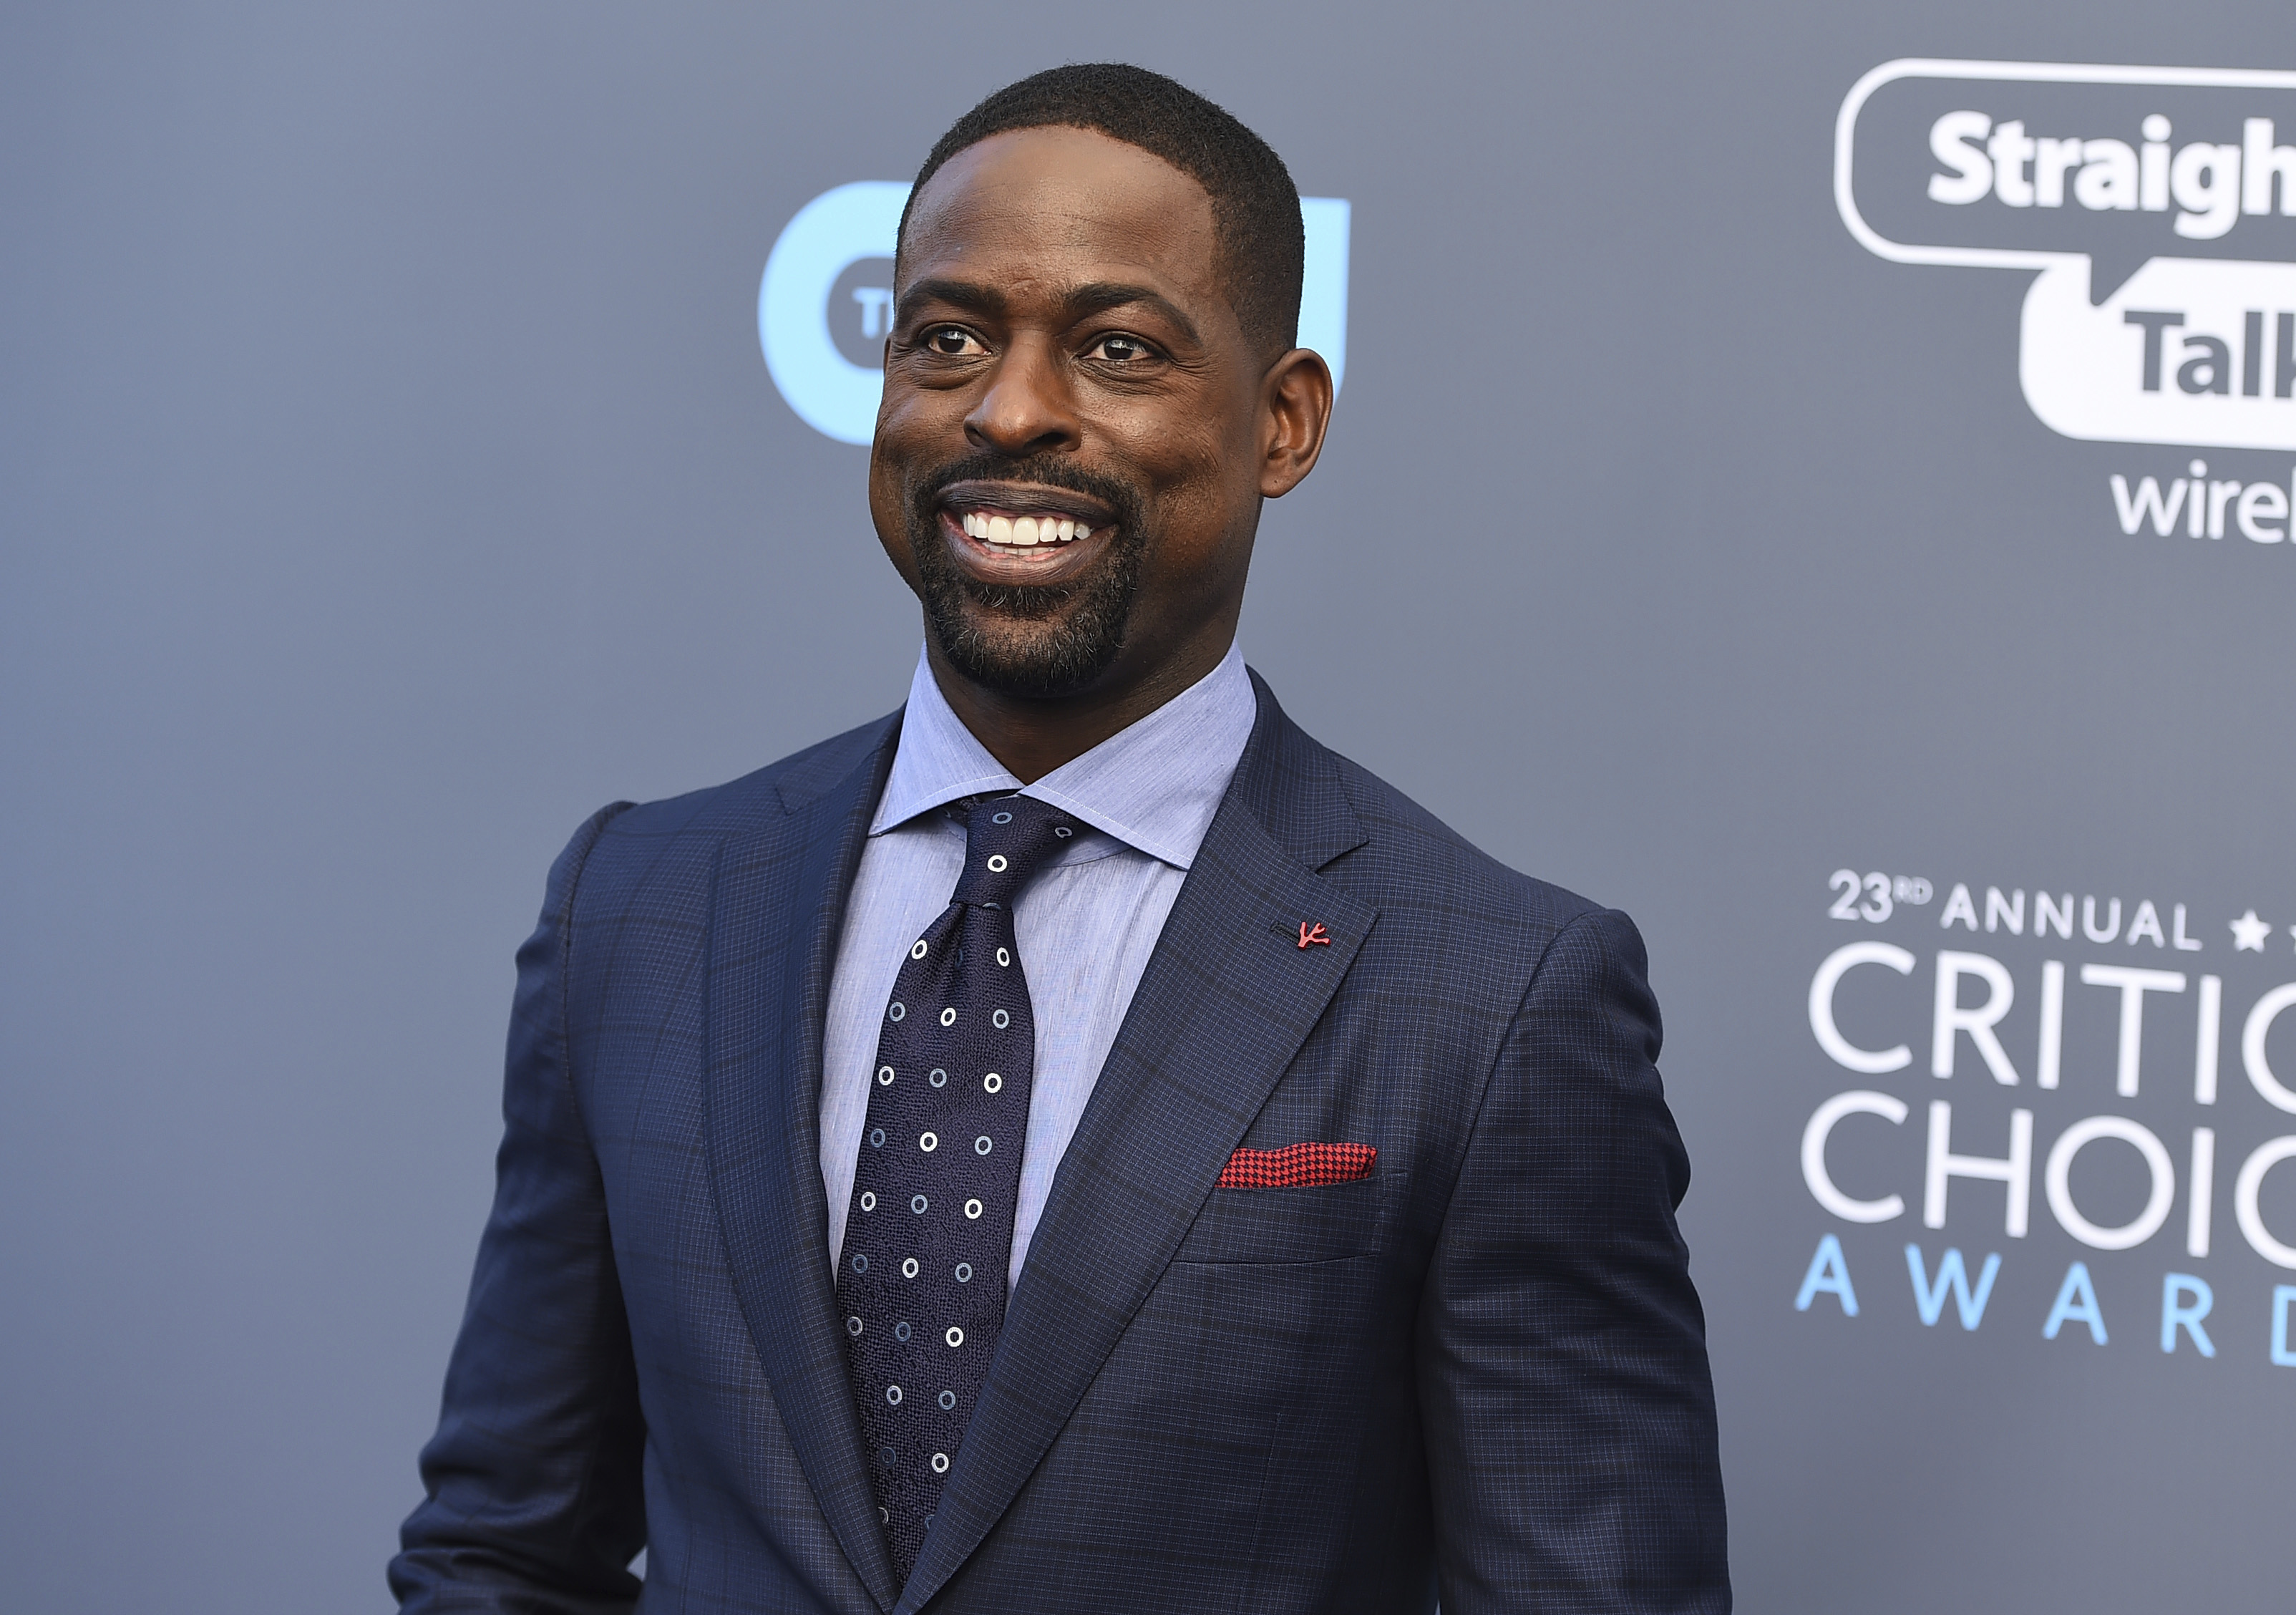 <div class='meta'><div class='origin-logo' data-origin='AP'></div><span class='caption-text' data-credit='Jordan Strauss/Invision/AP'>Sterling K. Brown arrives at the 23rd annual Critics' Choice Awards at the Barker Hangar on Thursday, Jan. 11, 2018, in Santa Monica, Calif.</span></div>